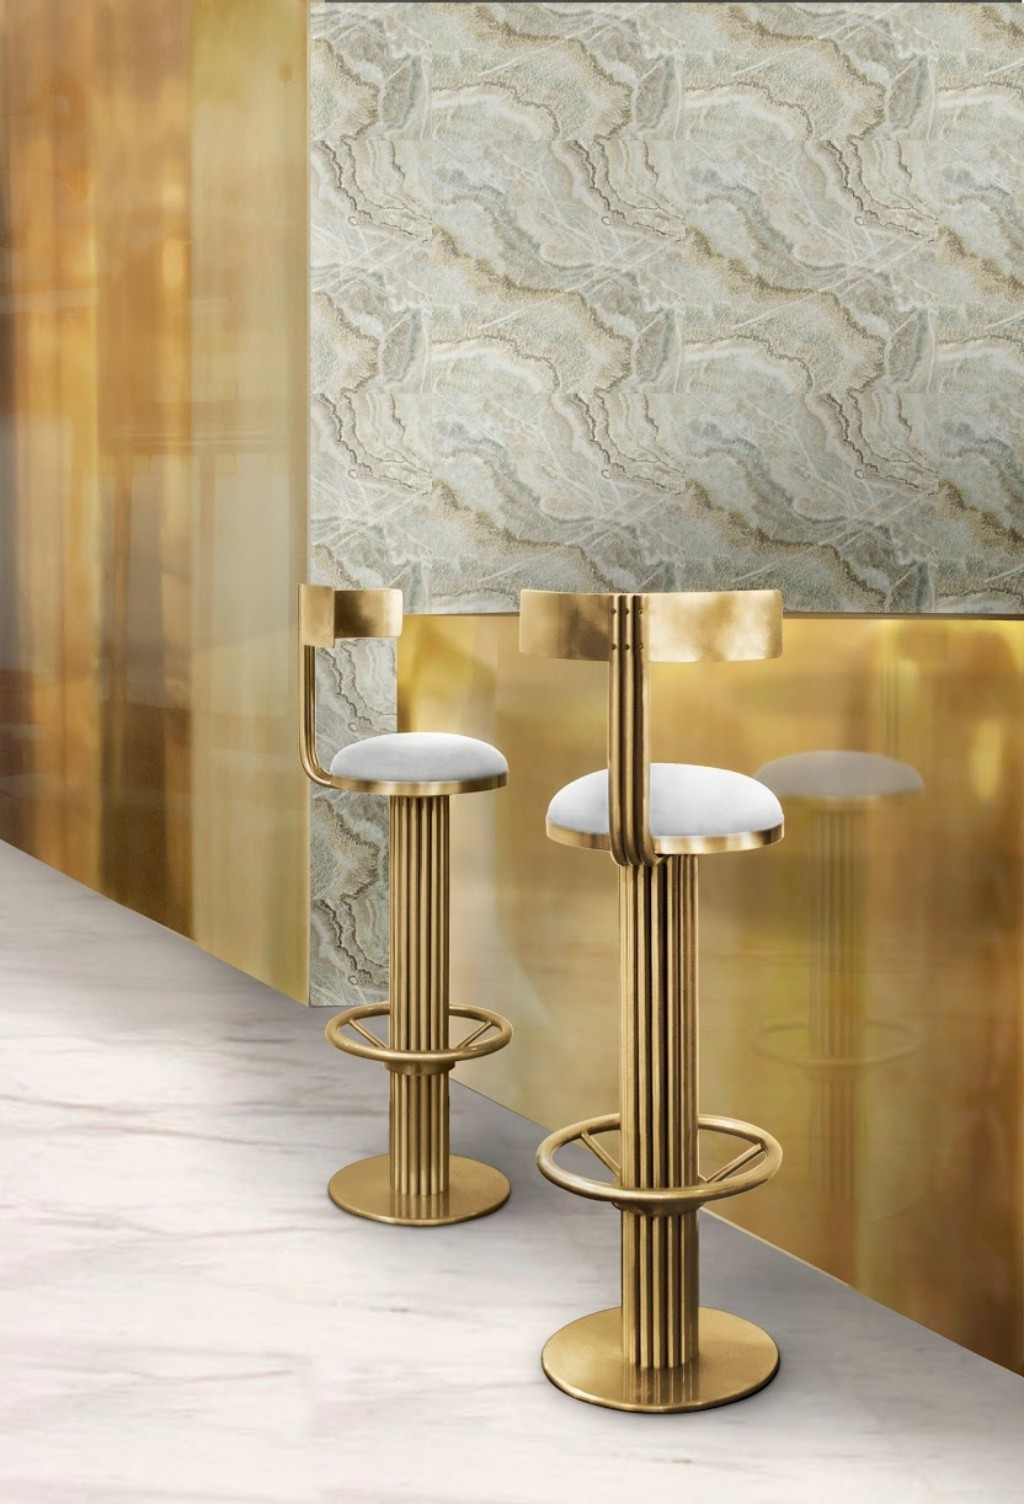 Kelly Is A Golden Bar Stool Inspired In The Sculpted Arches From Clic Movie Casablanca With Structure Polished Br And Brown